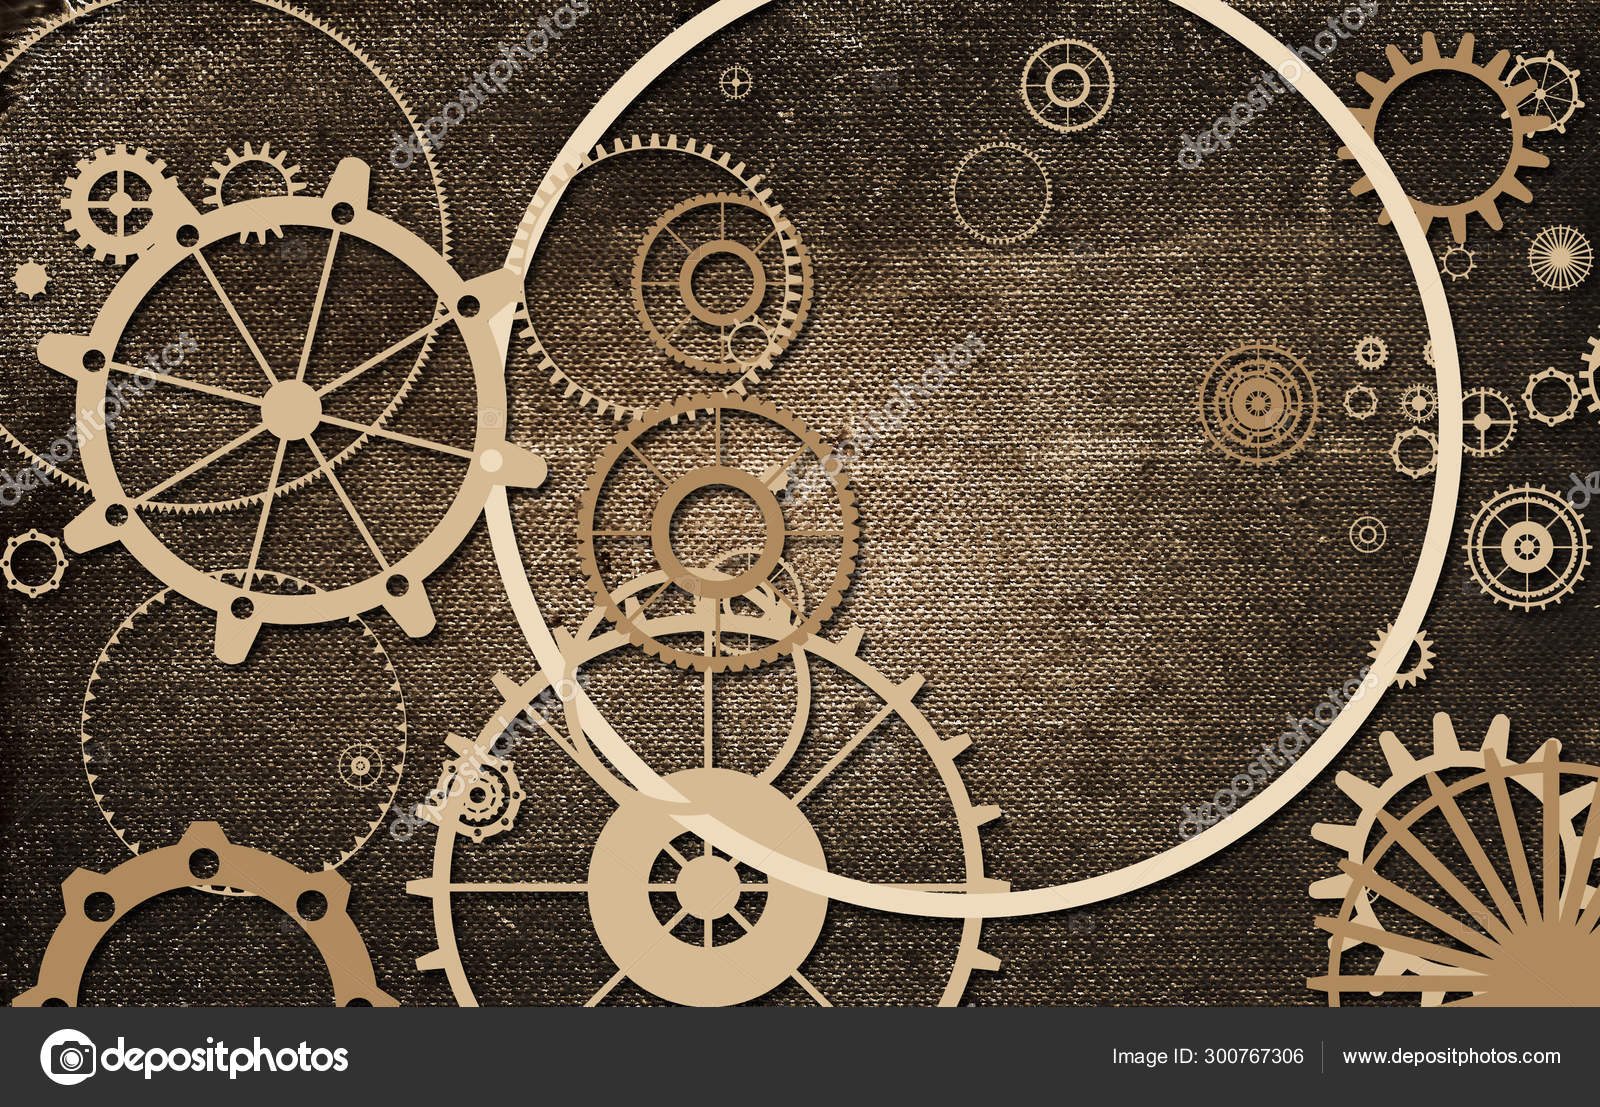 Steampunk Old Background Paper Canvas Frame Cogs Gears Retro Vintage Stock Photo C Magergram